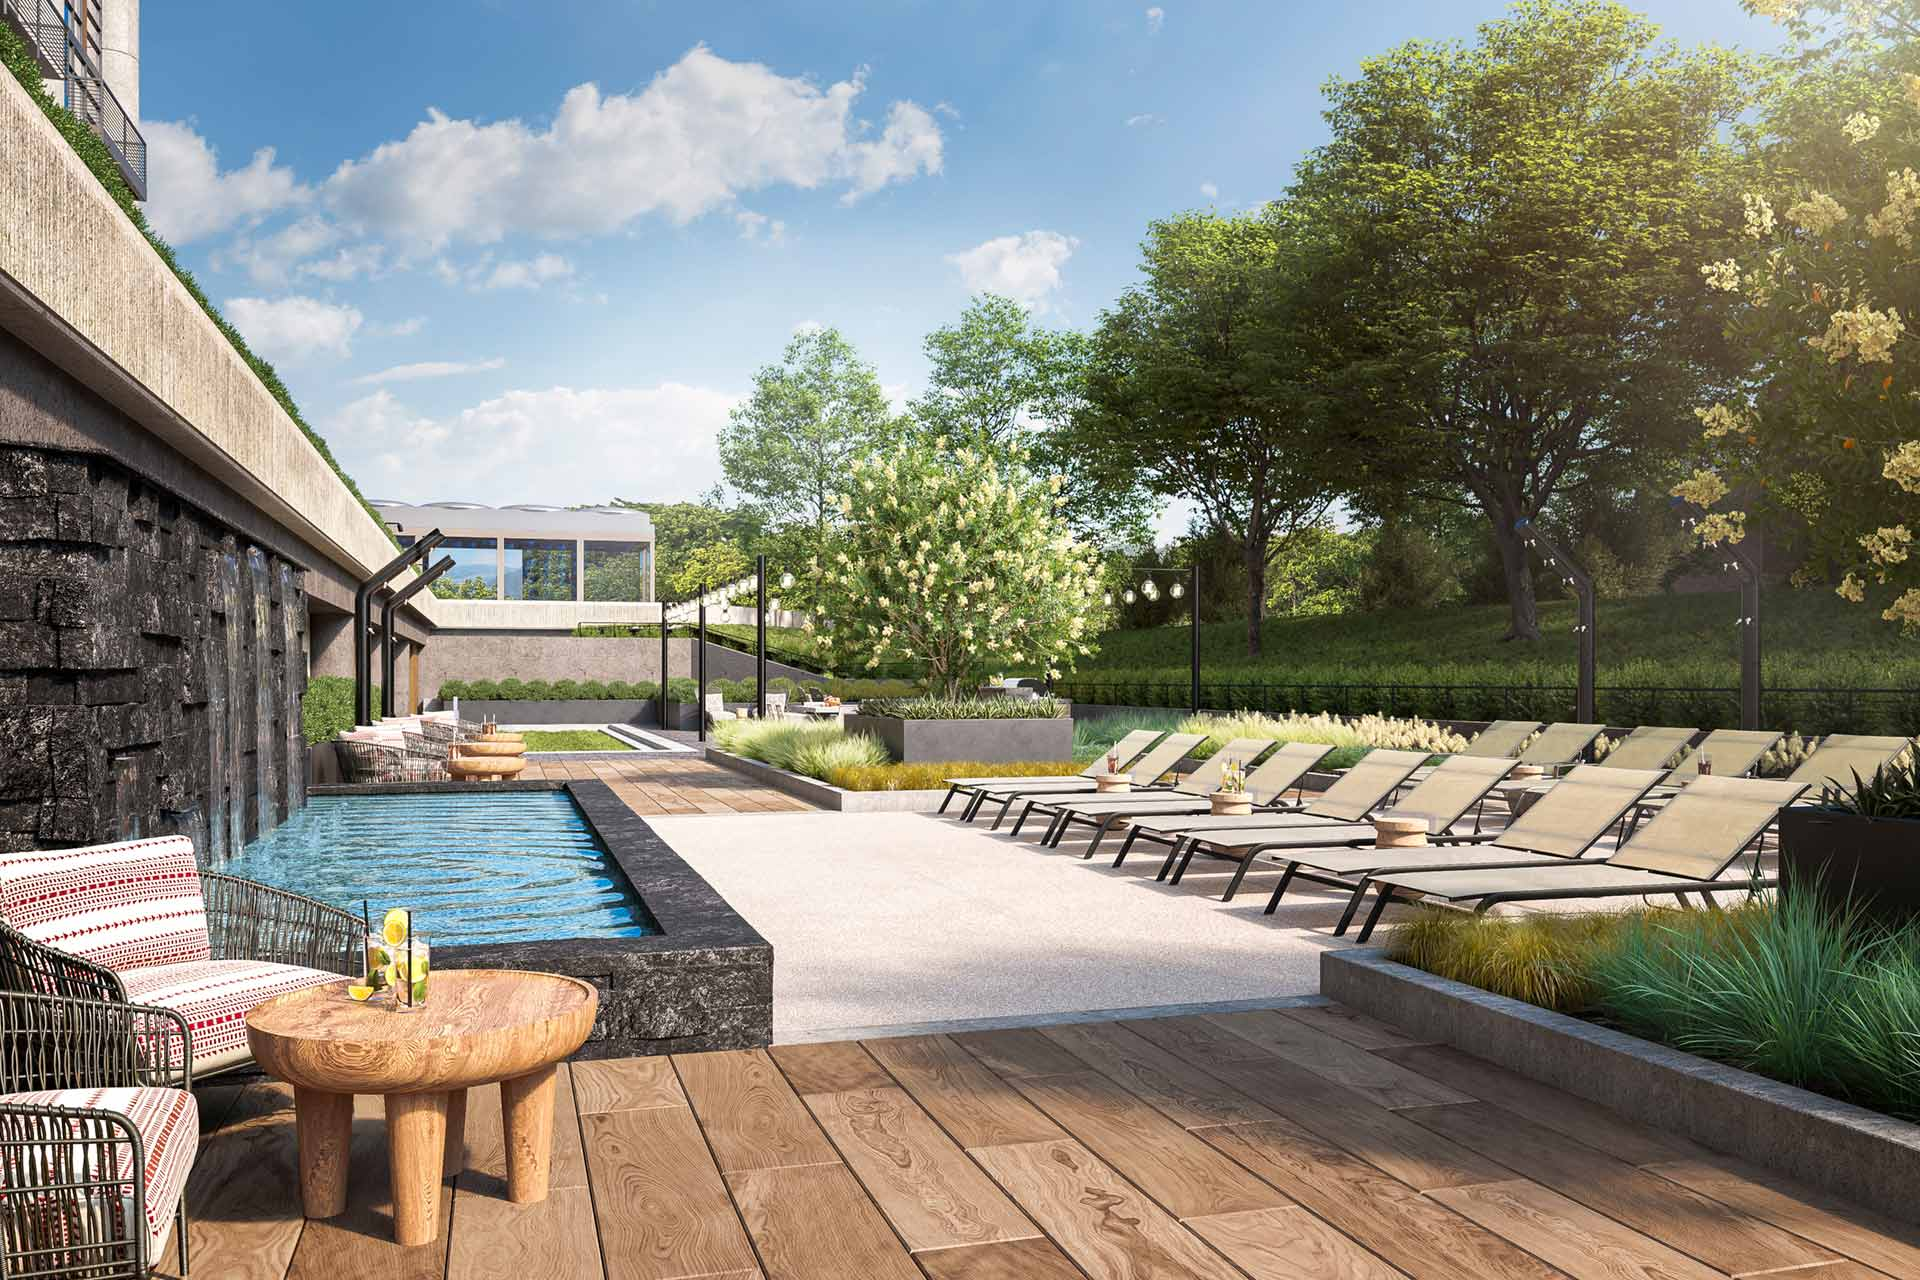 Patio with waterfall fountain and chaise lounges